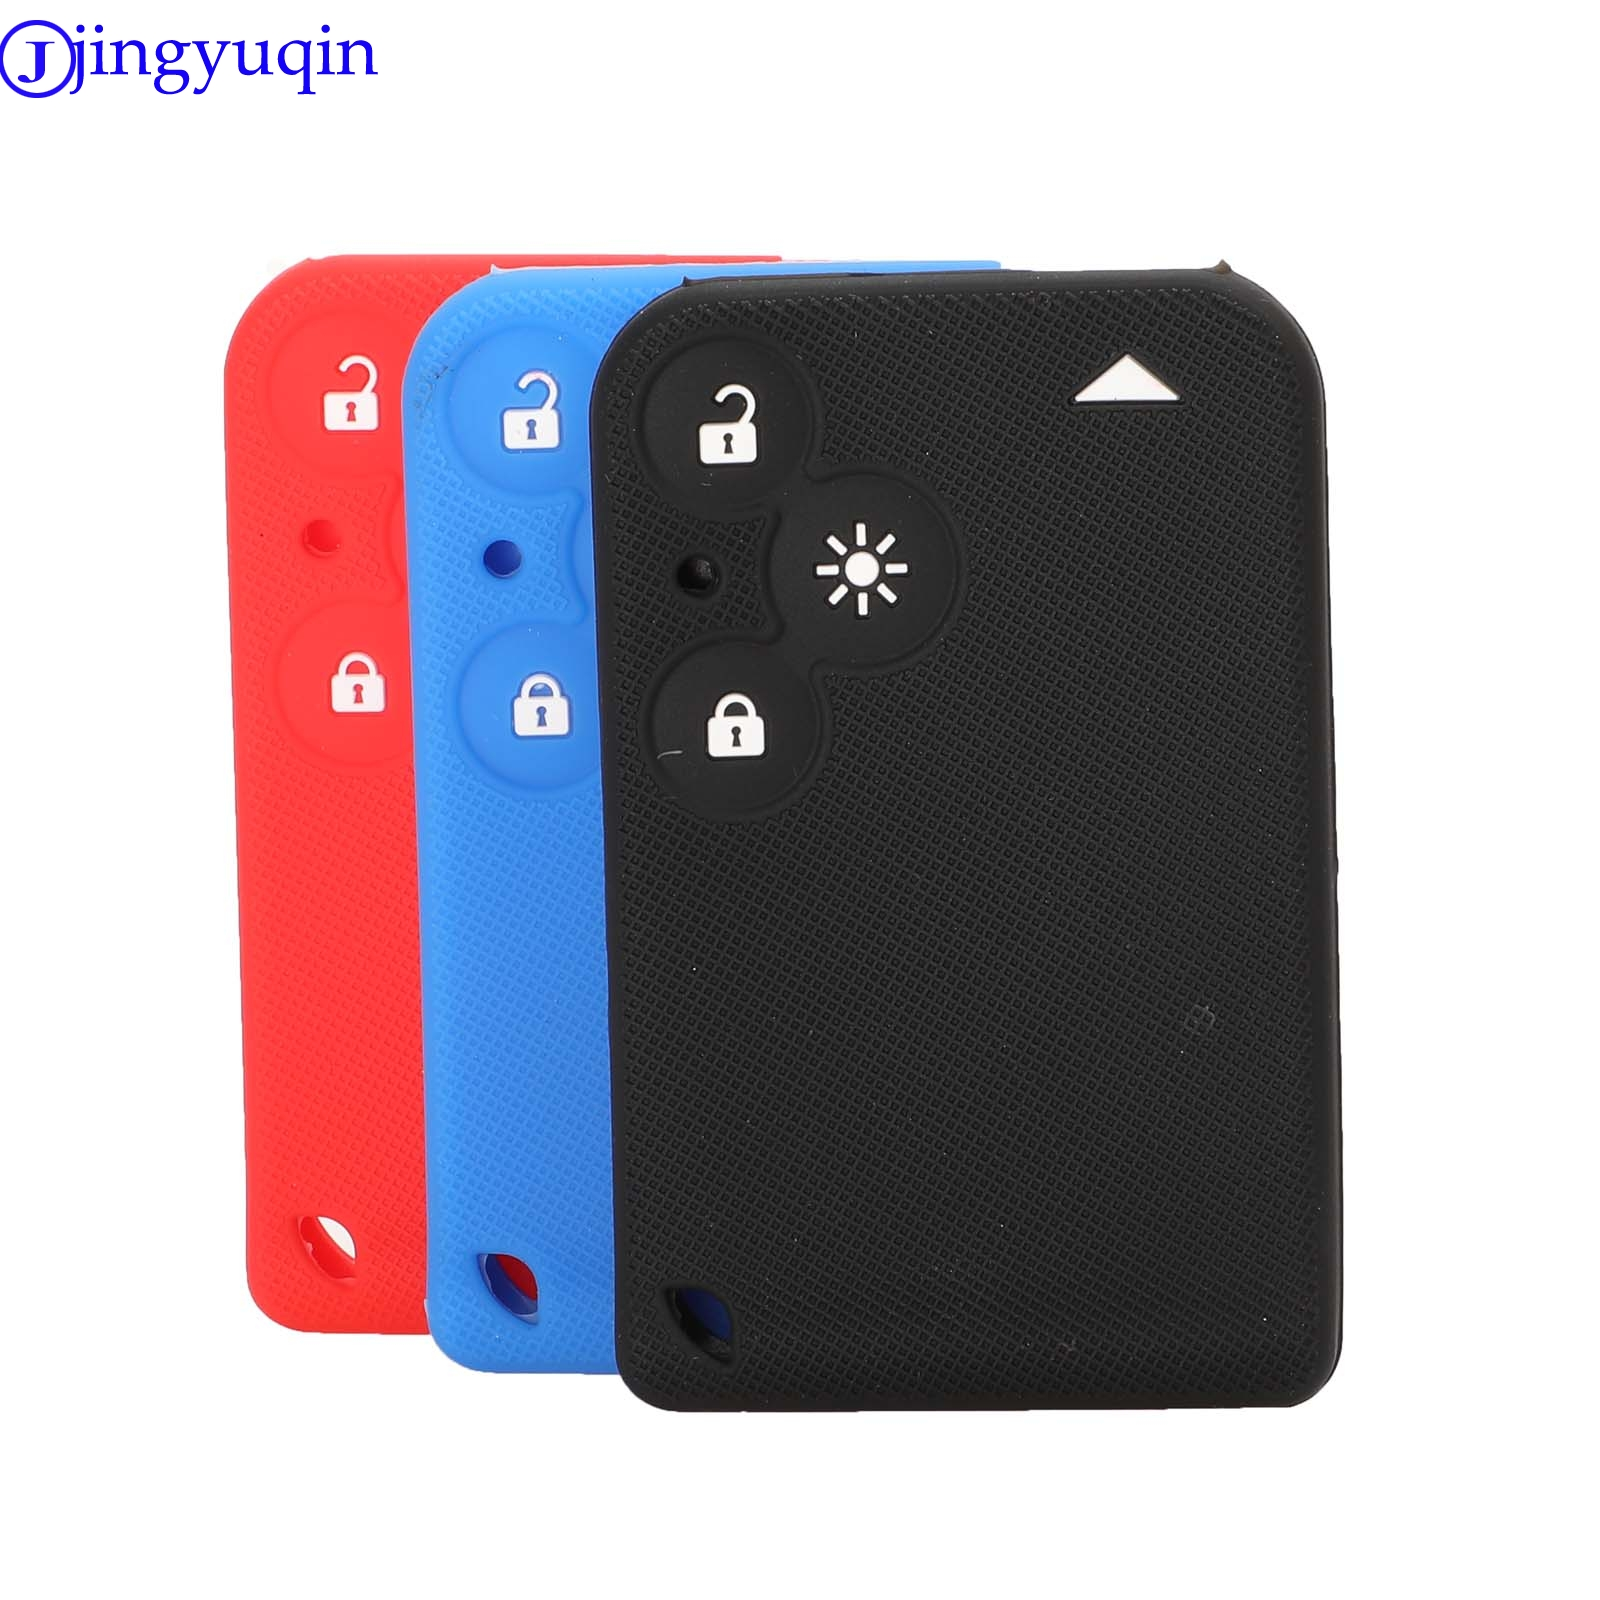 Jingyuqin Remote Car Key Silicone Cover Case For Renault Laguna Espace 3 Buttons Card Holder